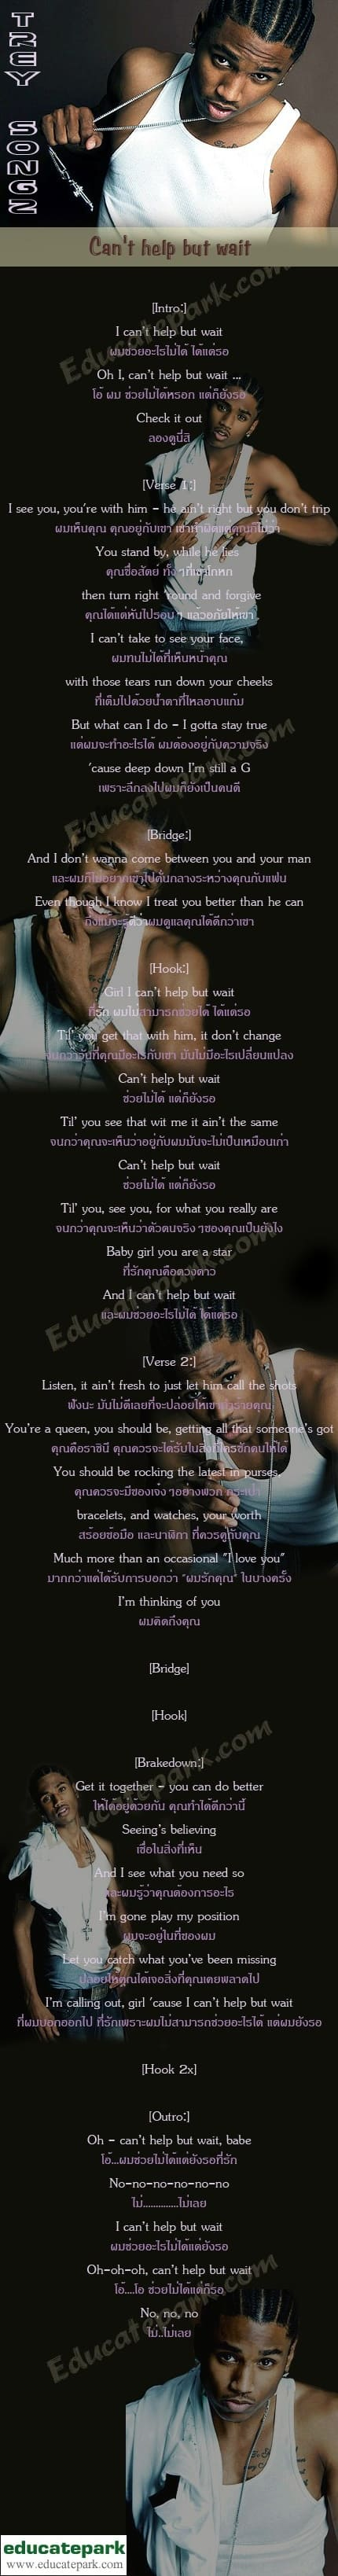 แปลเพลง Can't Help But Wait - Trey Songz